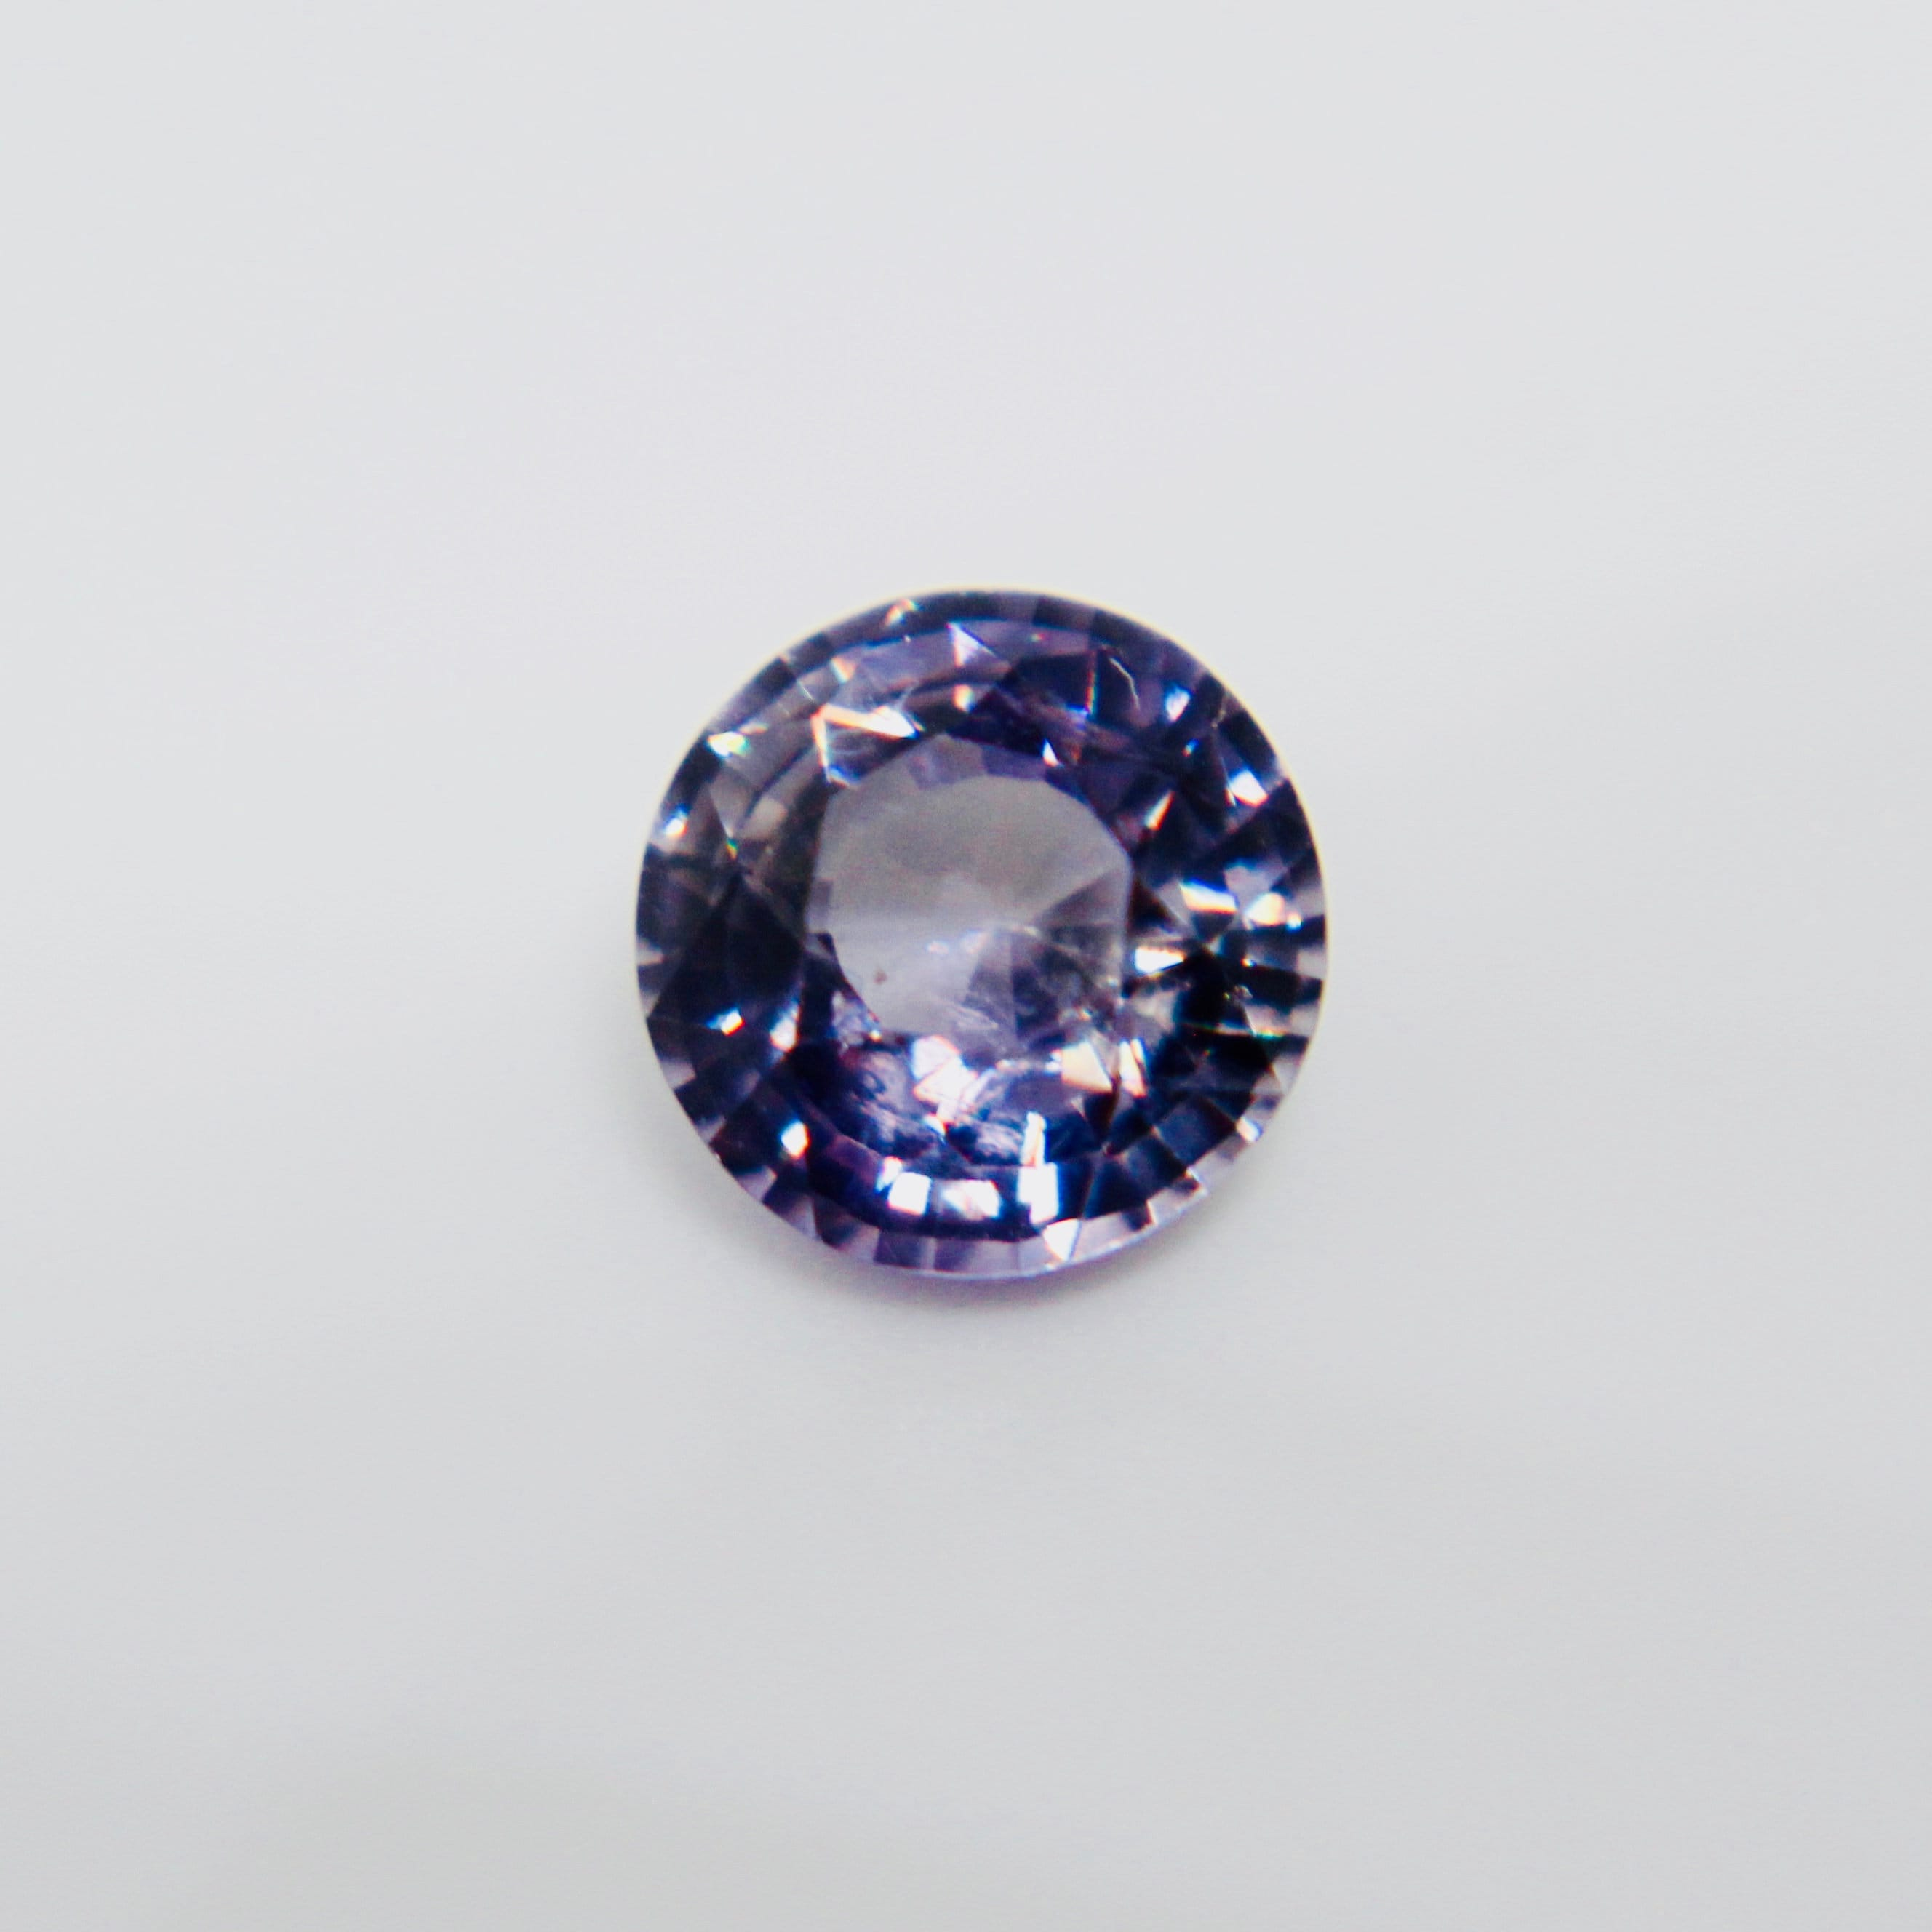 ceylon sapphire i purple violetish blue color ct ring to a change untreated engagement diamond